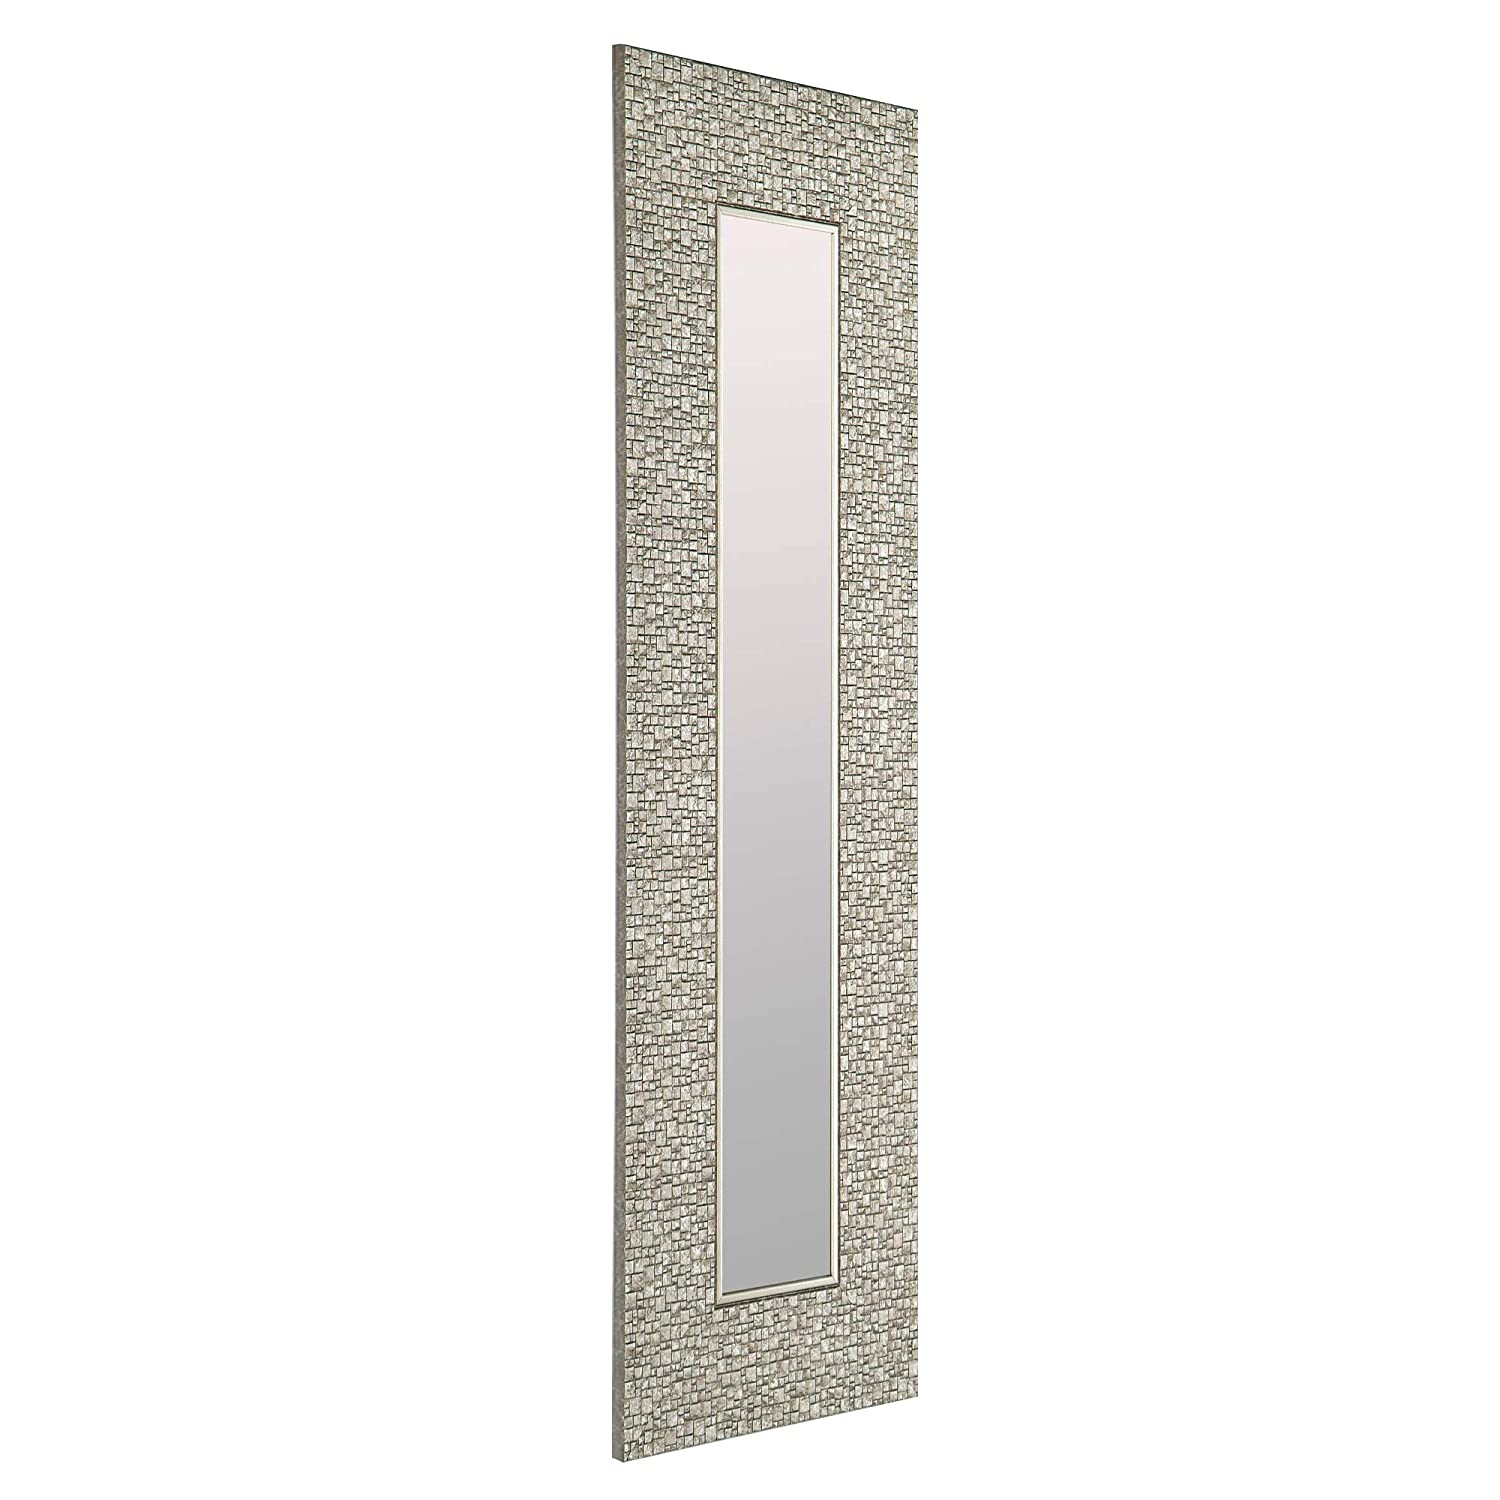 Mirrorize Canada Set of 3 Antique Narrow Mosaic Framed Wall Mirror Vanity,Hallway,Bathroom, Bedroom 9.25X27.75 Silver Rectangle Small Accent Mirror